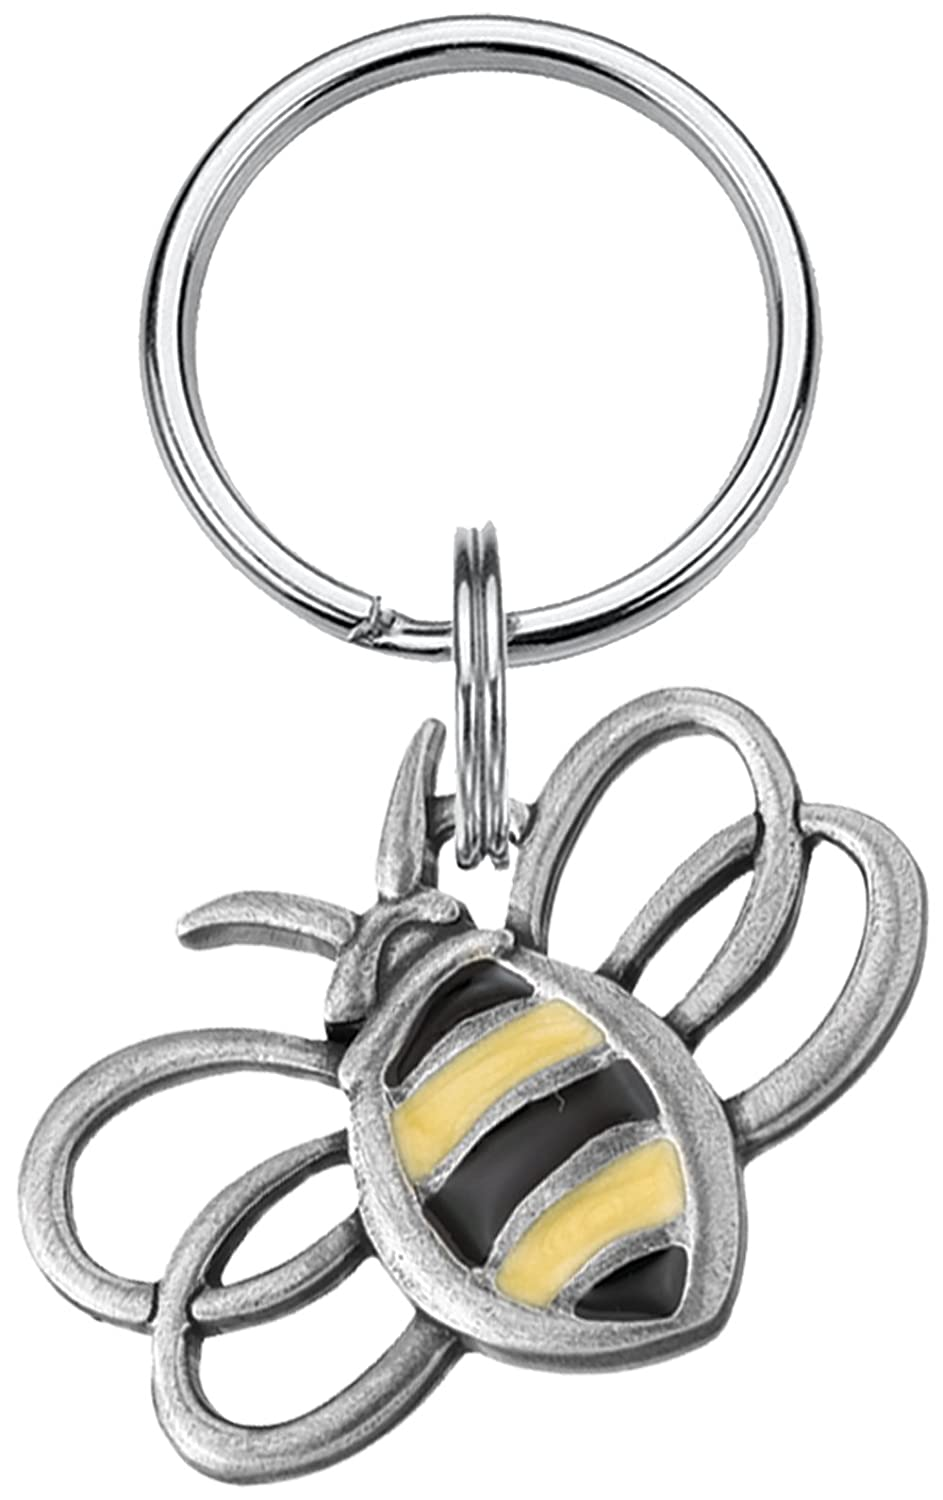 Amazon.com: Danforth – Bumblebee Pewter Llavero: Office Products